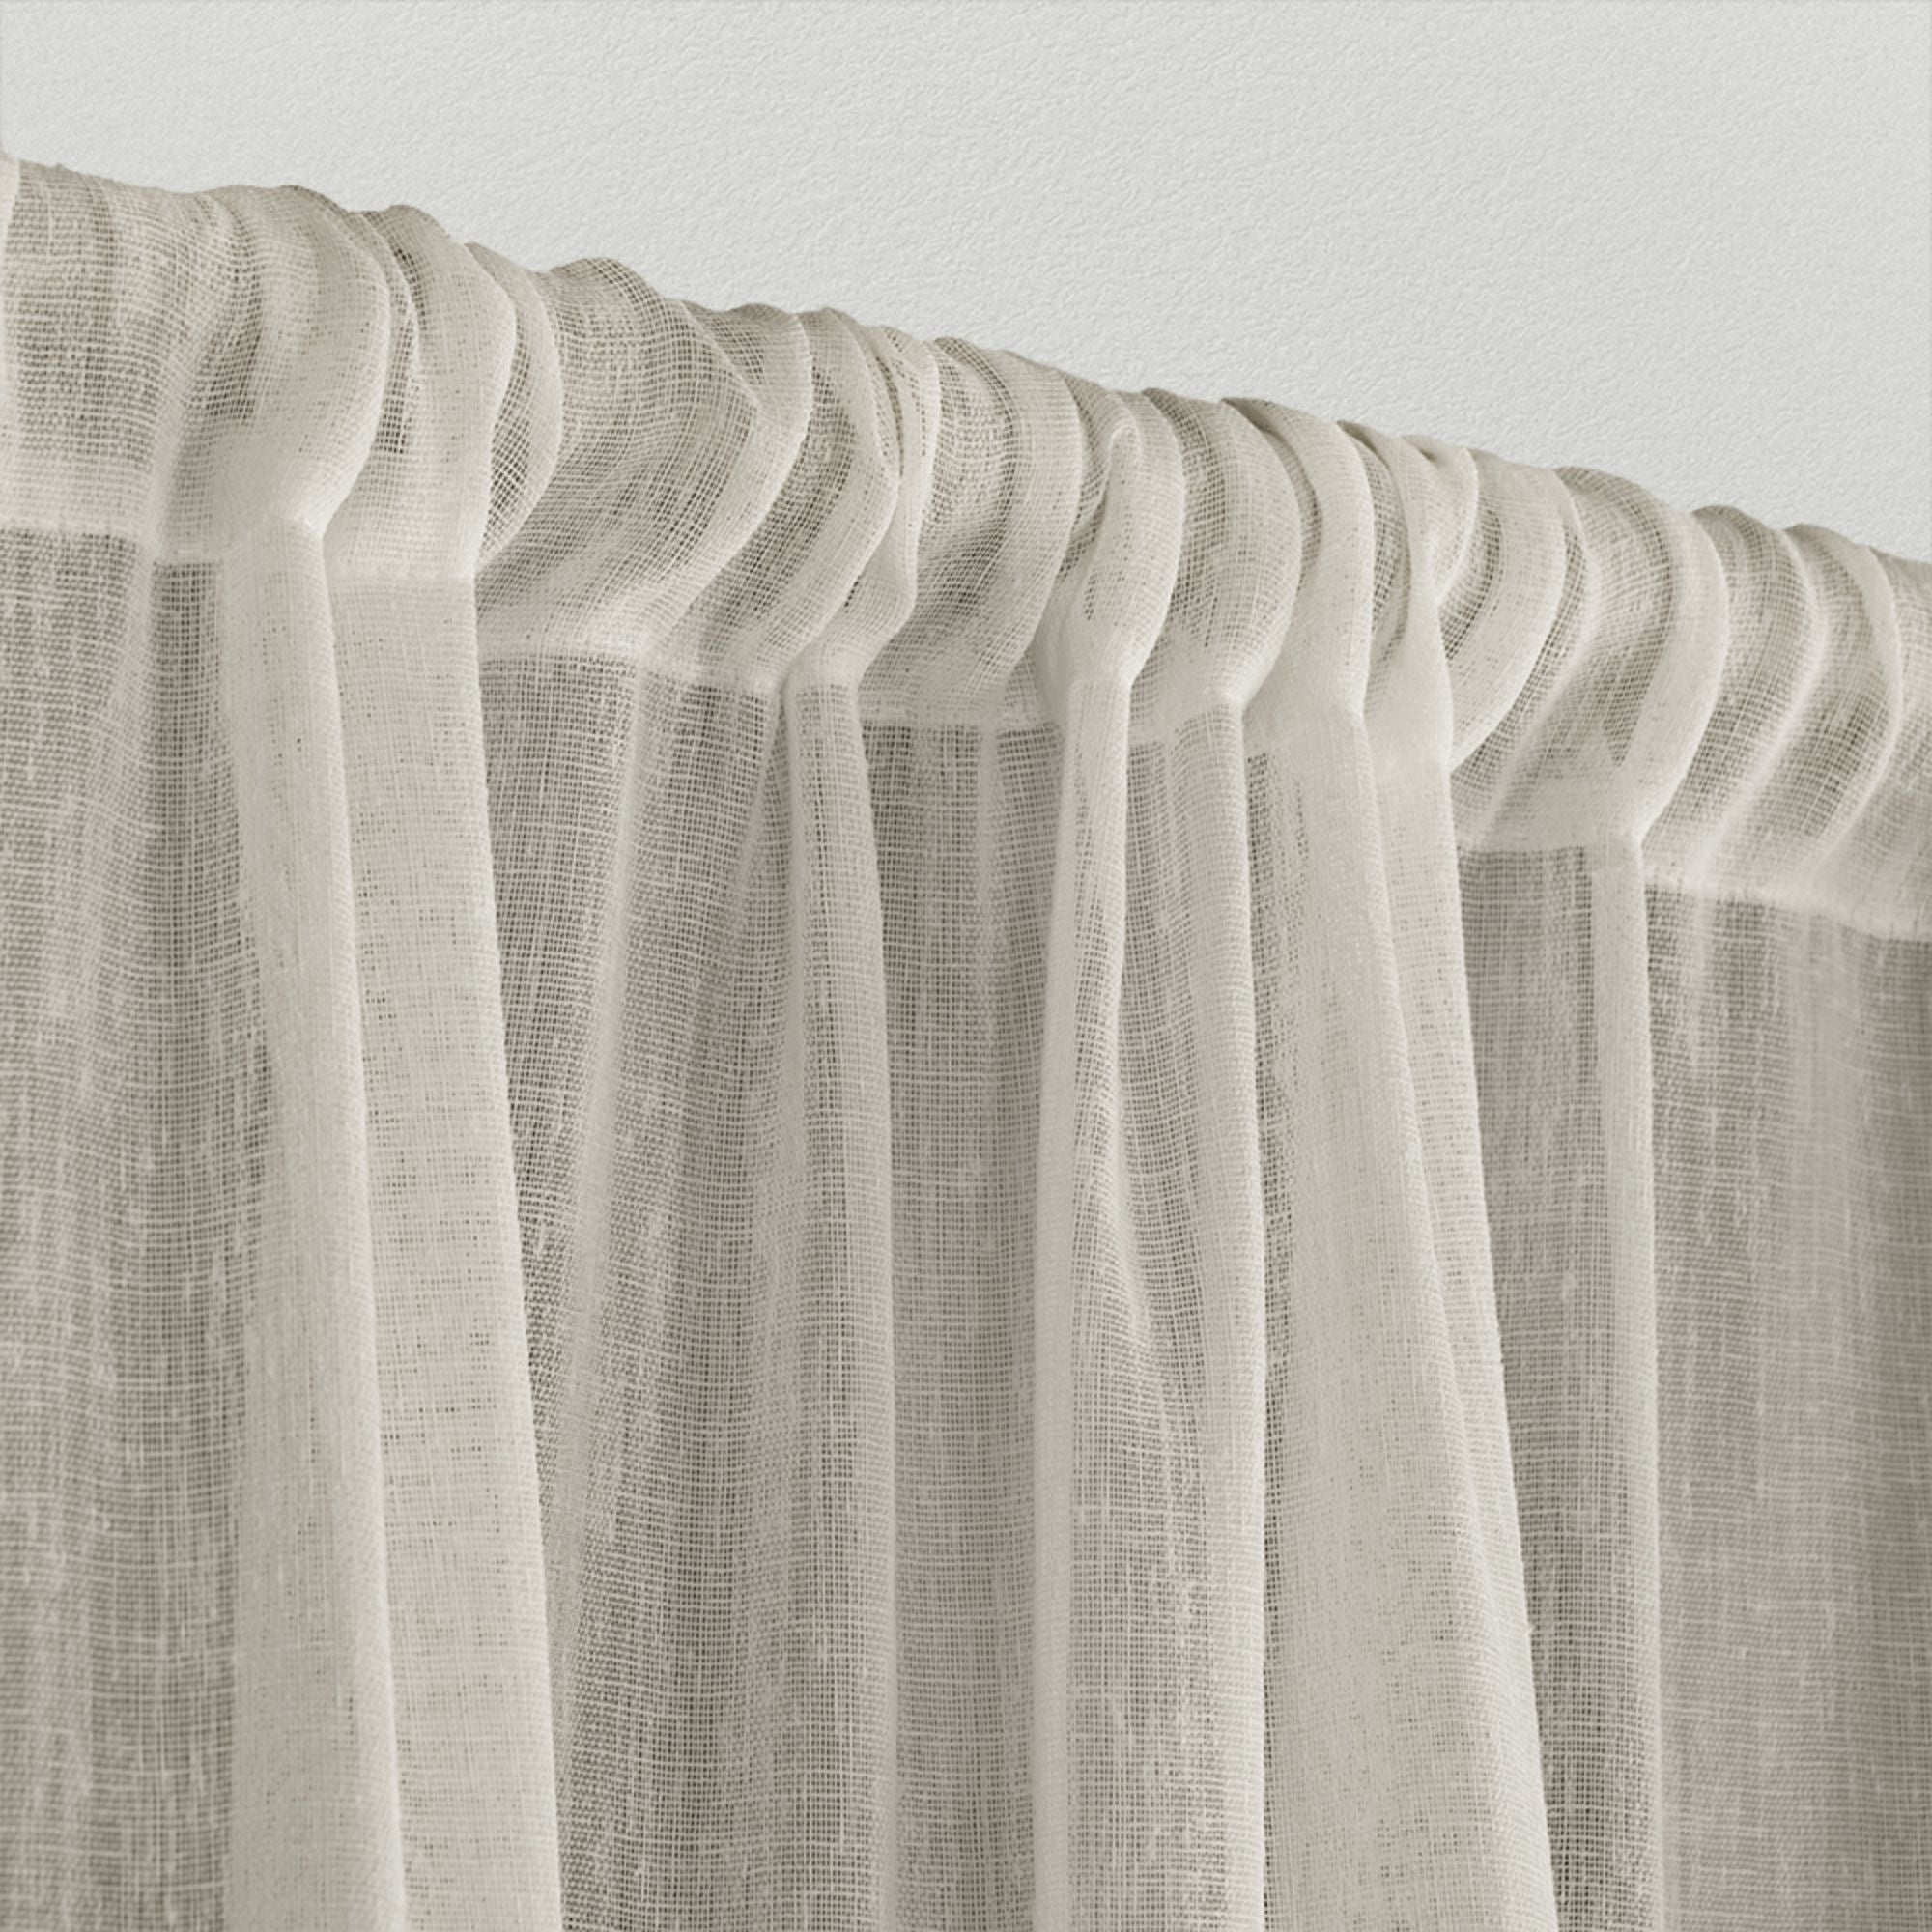 Belgian Sheer Window Curtain Panel Pairs With Rod Pocket Inside Well Liked Ati Home Belgian Sheer Window Curtain Panel Pair With Rod Pocket (View 7 of 20)